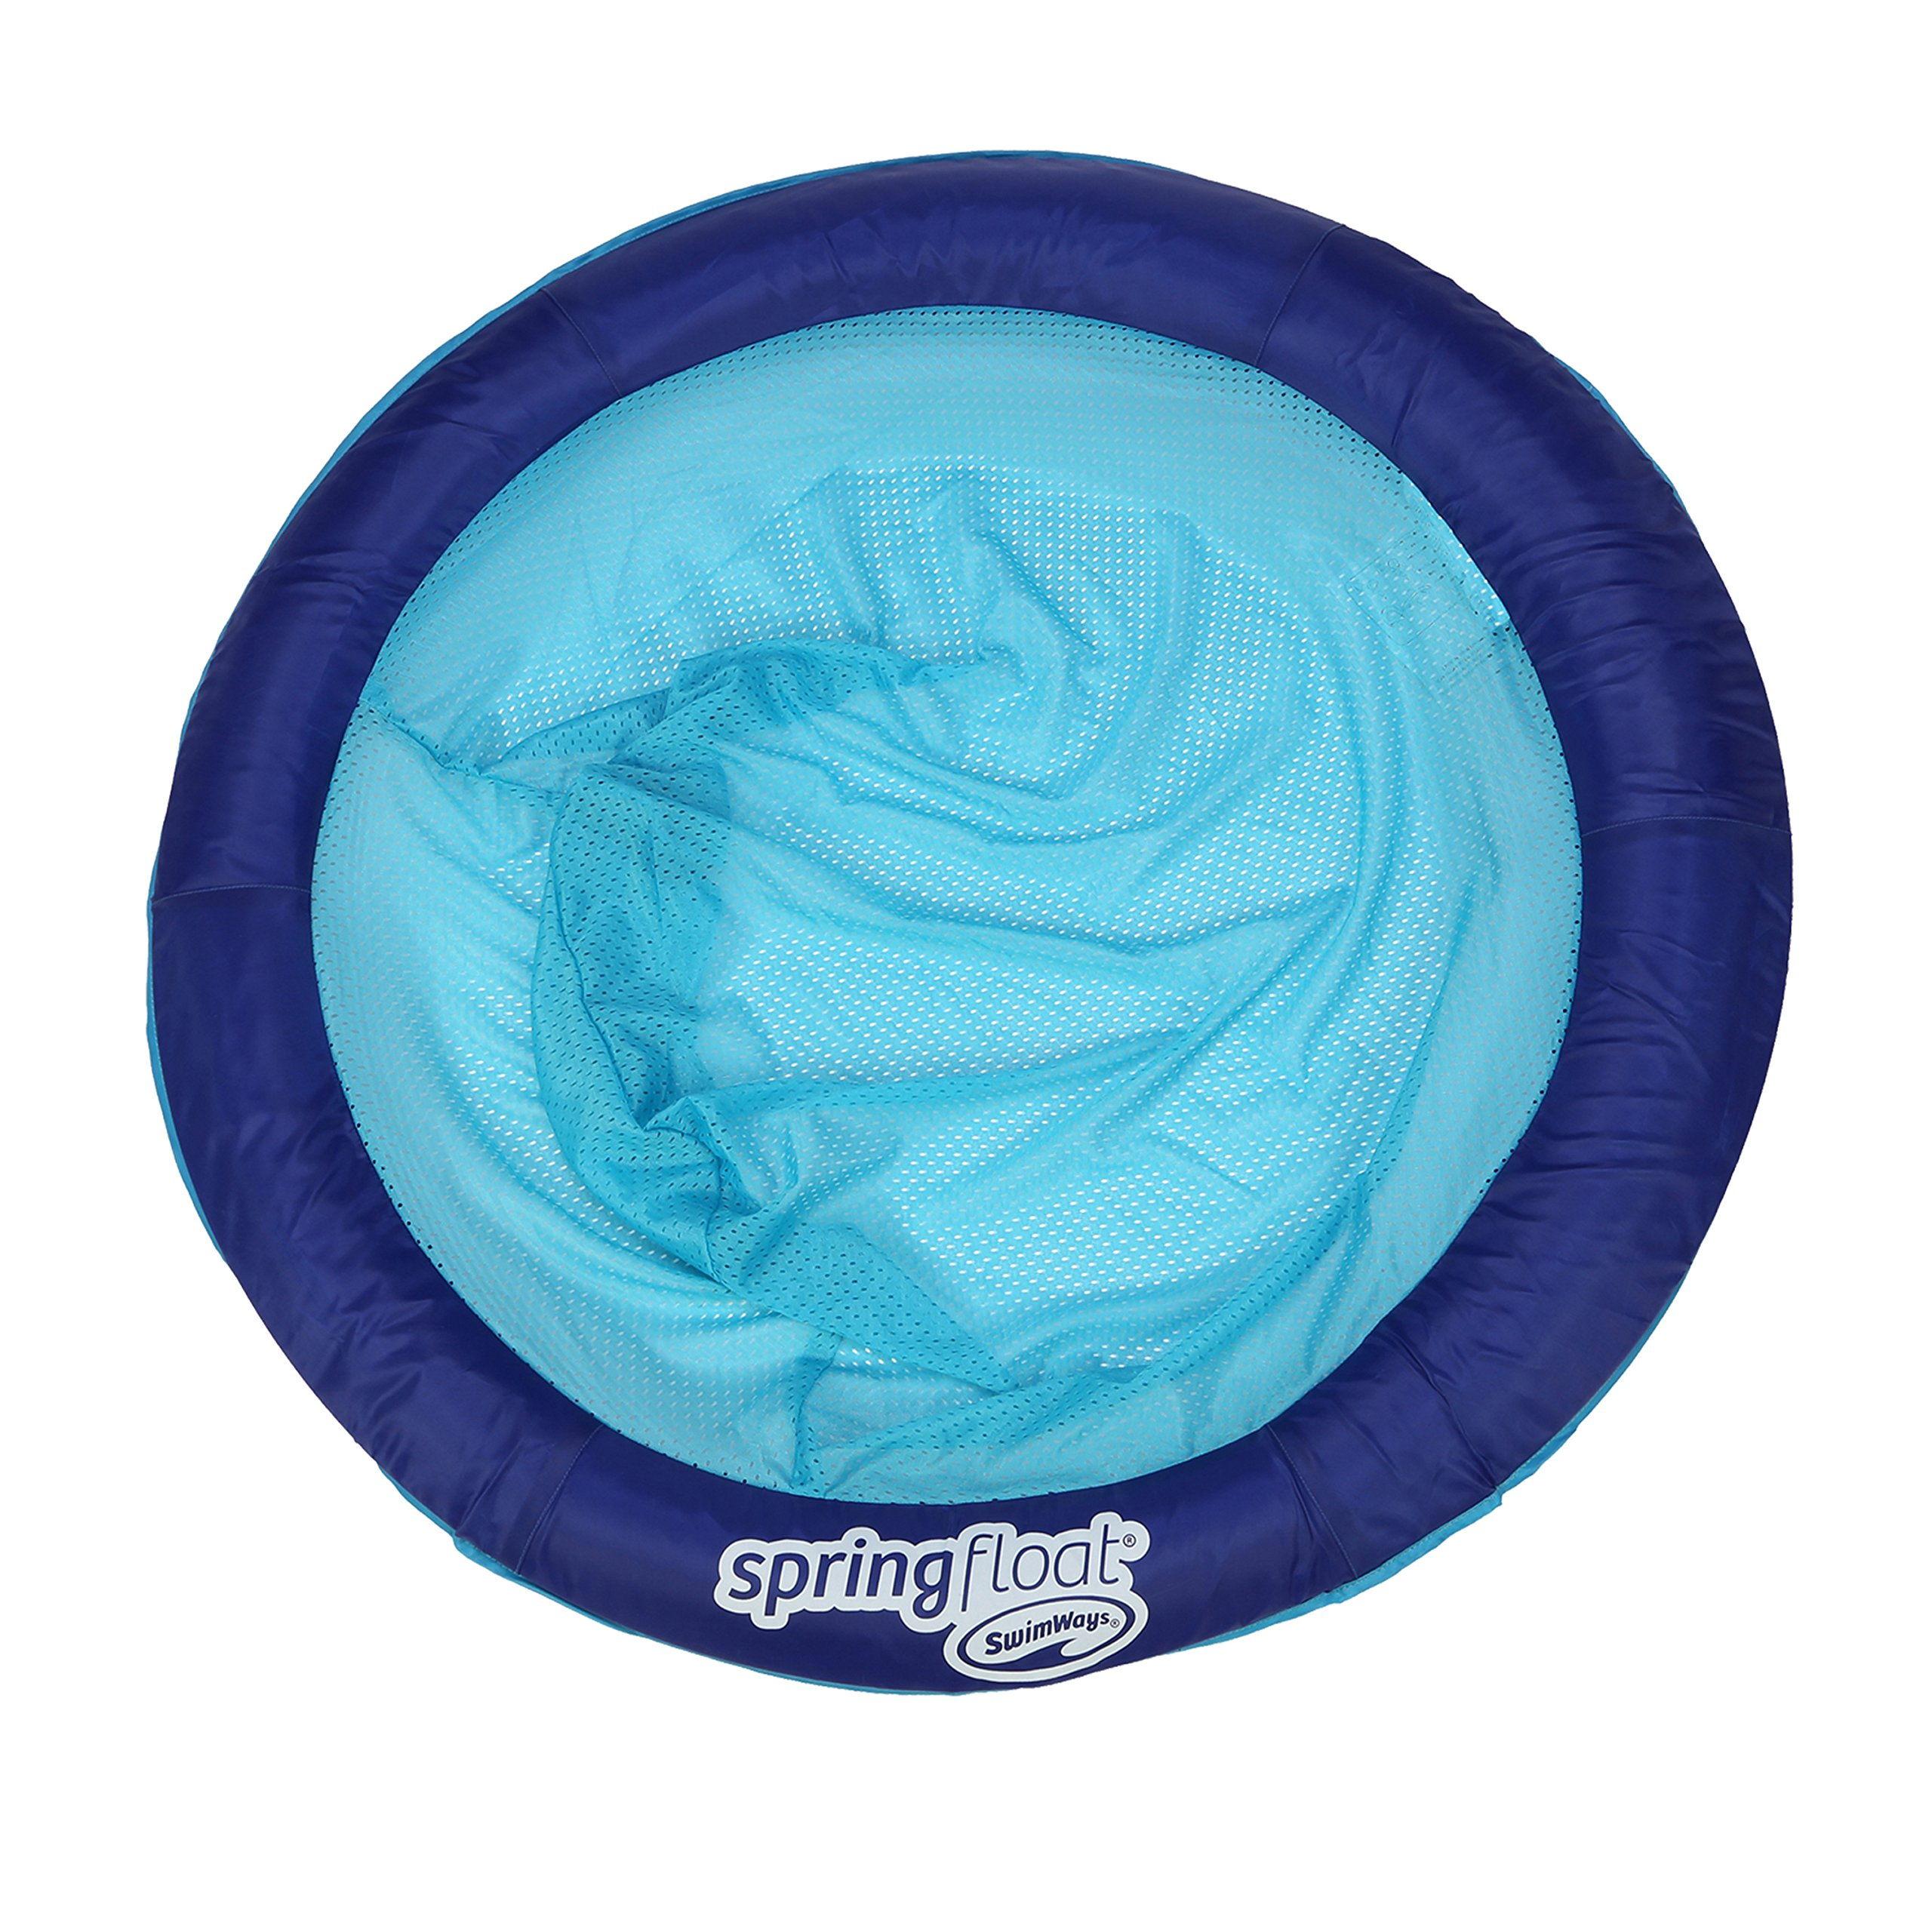 SwimWays Spring Float Papasan - Mesh Float for Pool or Lake - Dark Blue/Light Blue by SwimWays